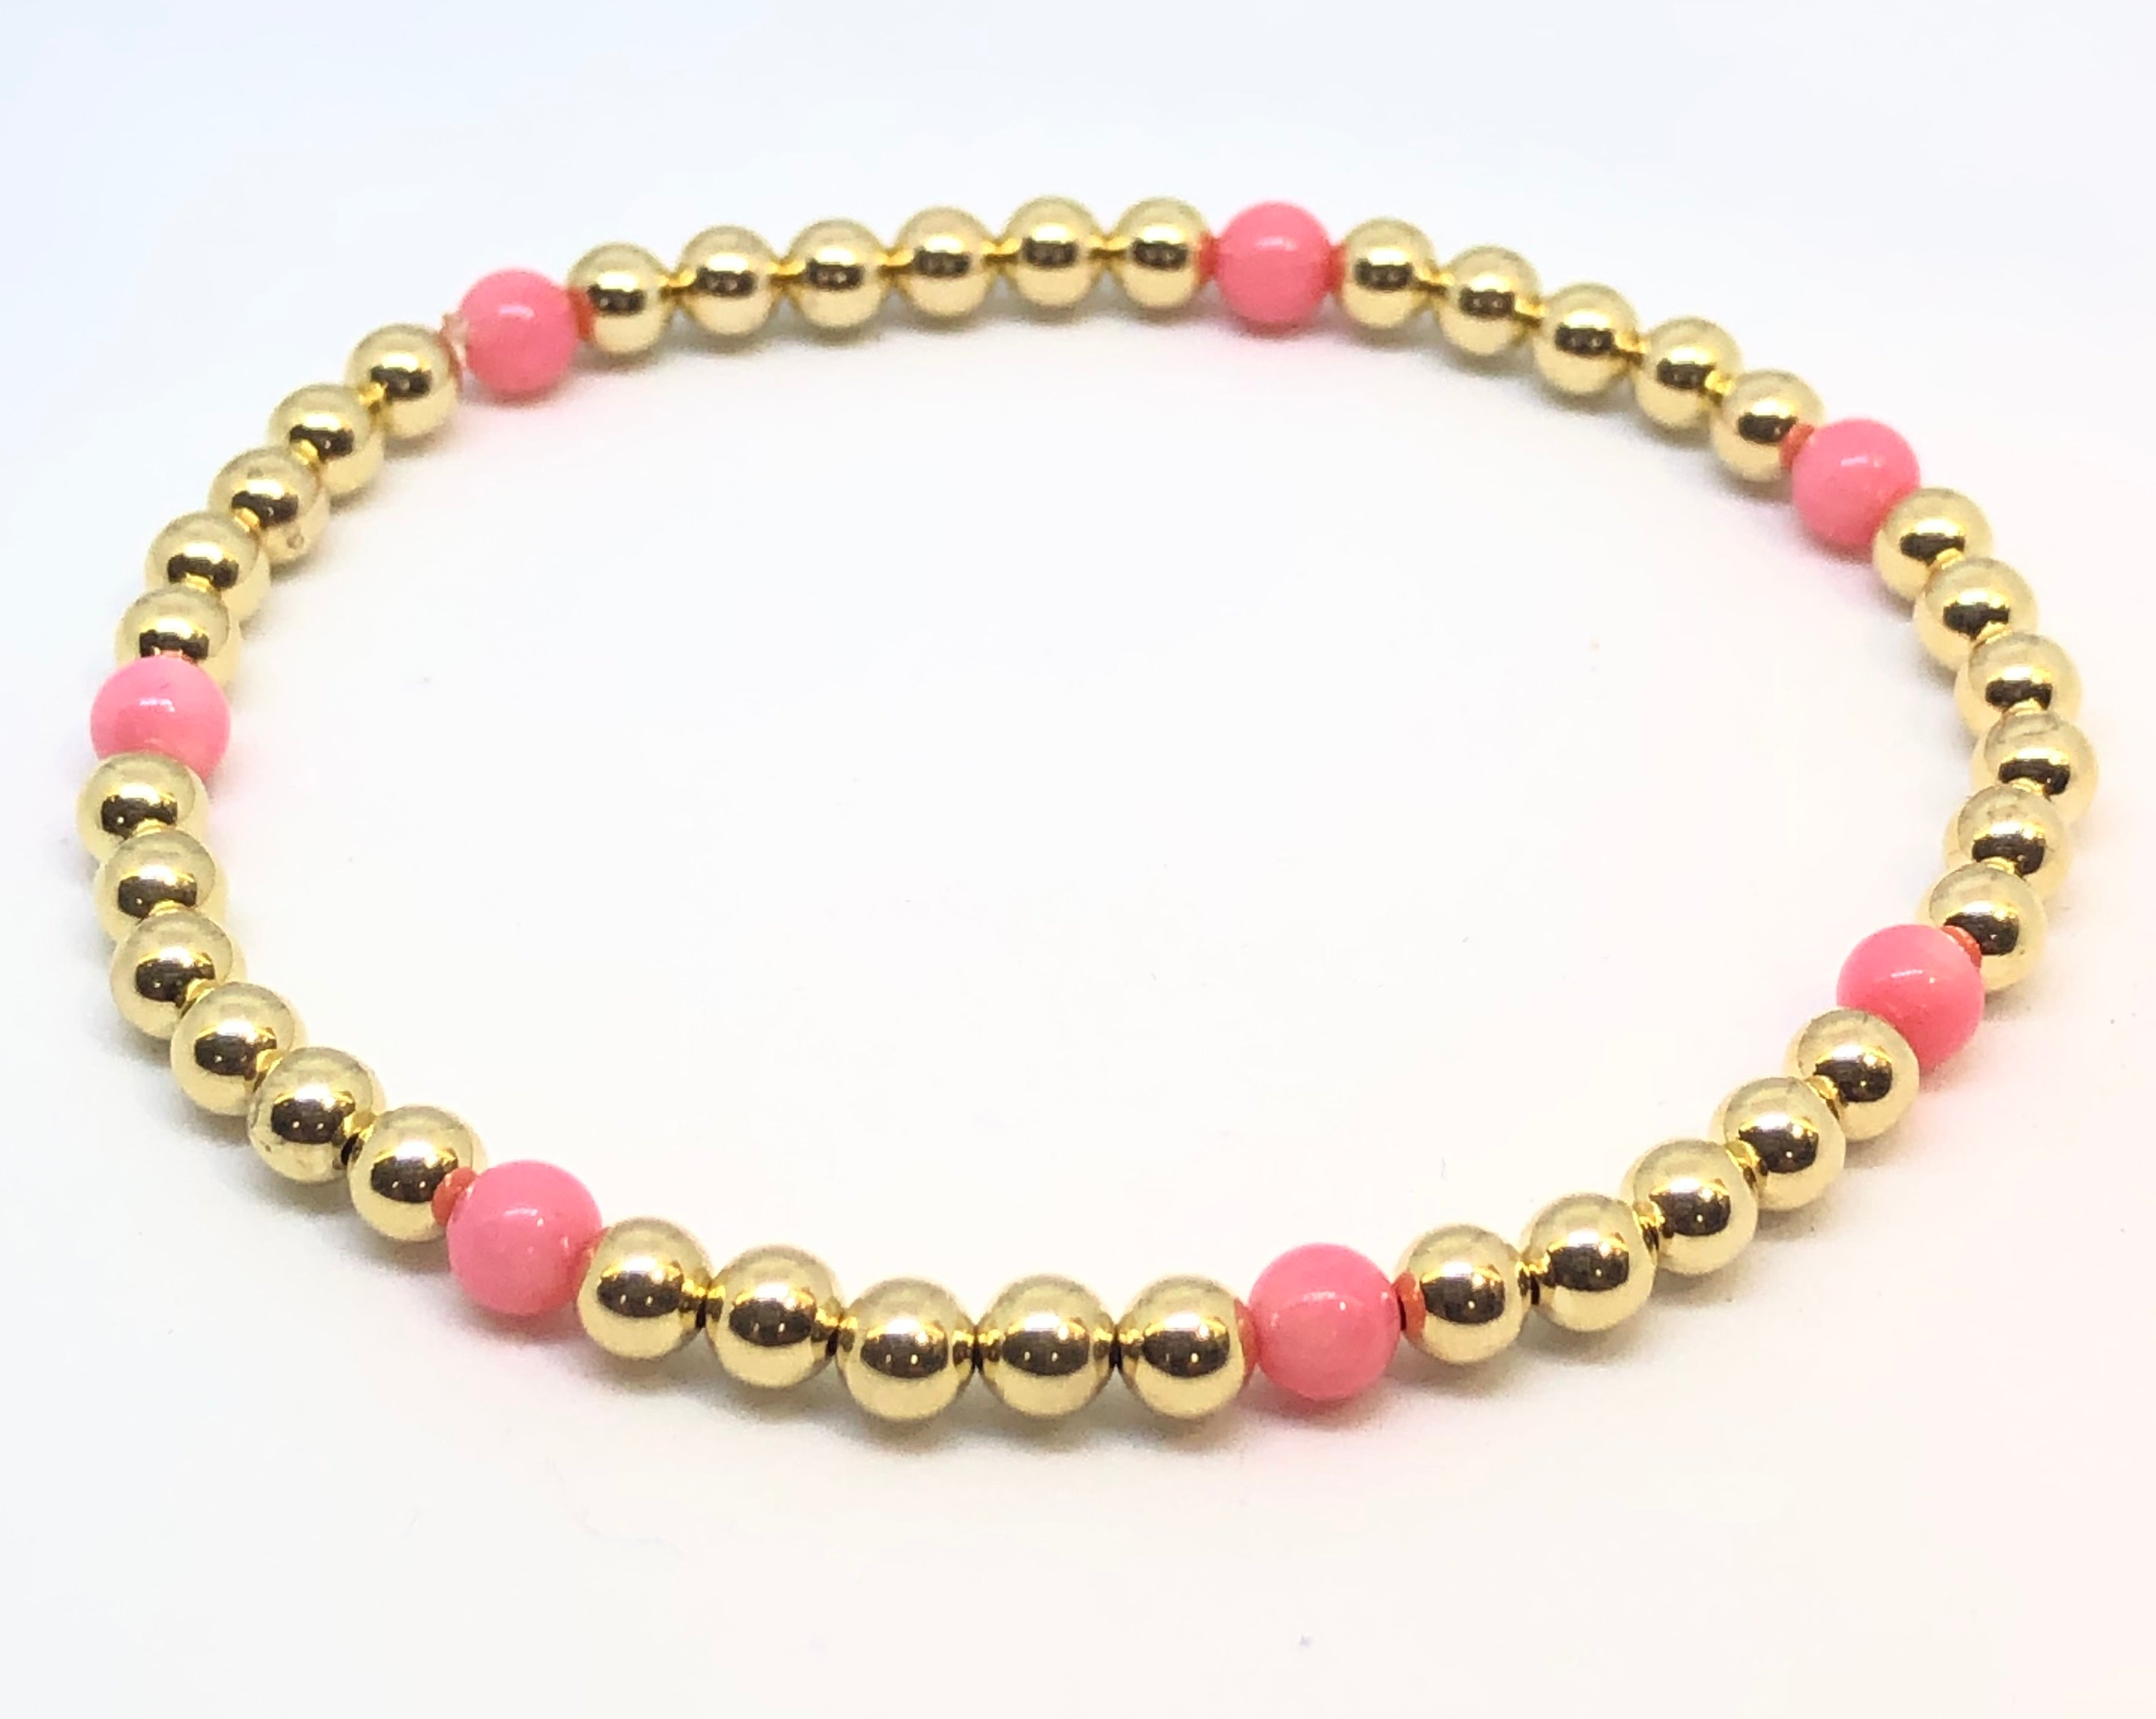 4mm 14kt Gold Filled Bead Bracelet with 7 4mm Pink Coral Beads